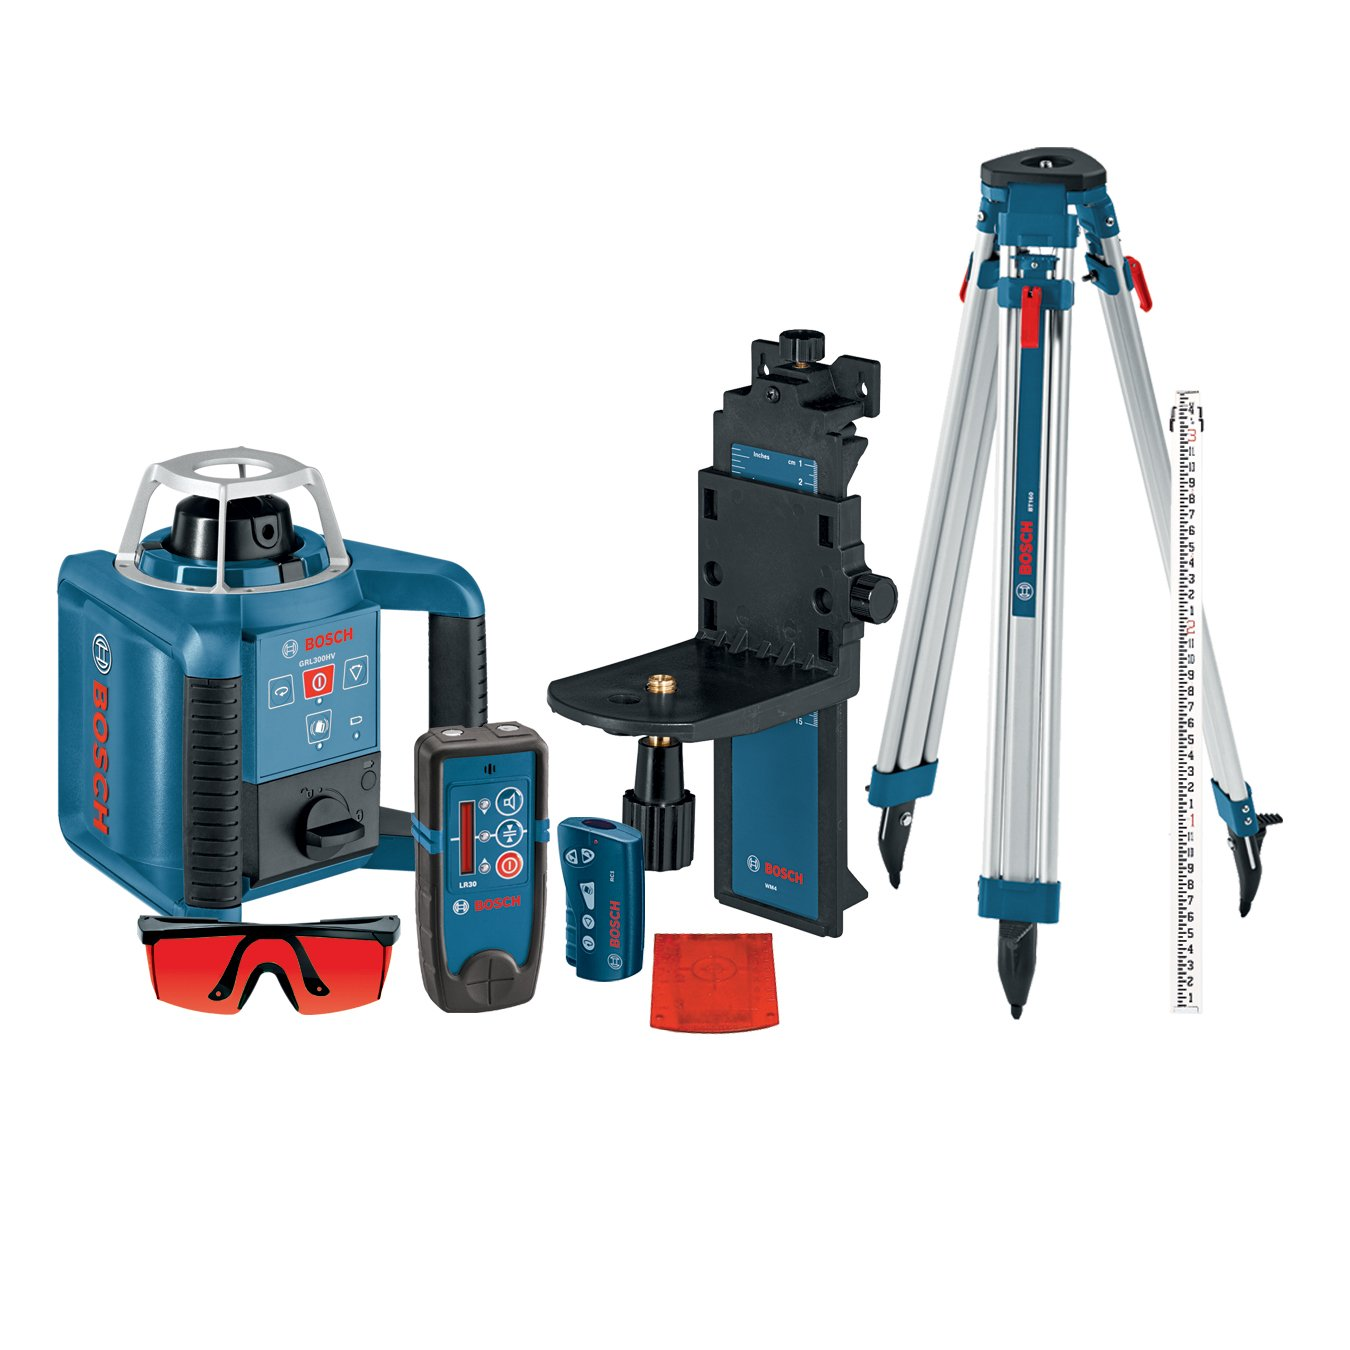 Bosch GRL300HVCK Self-Leveling Rotary Laser with Layout Beam Complete Kit with Receiver, Remote, Tri-pod and Wall Mount